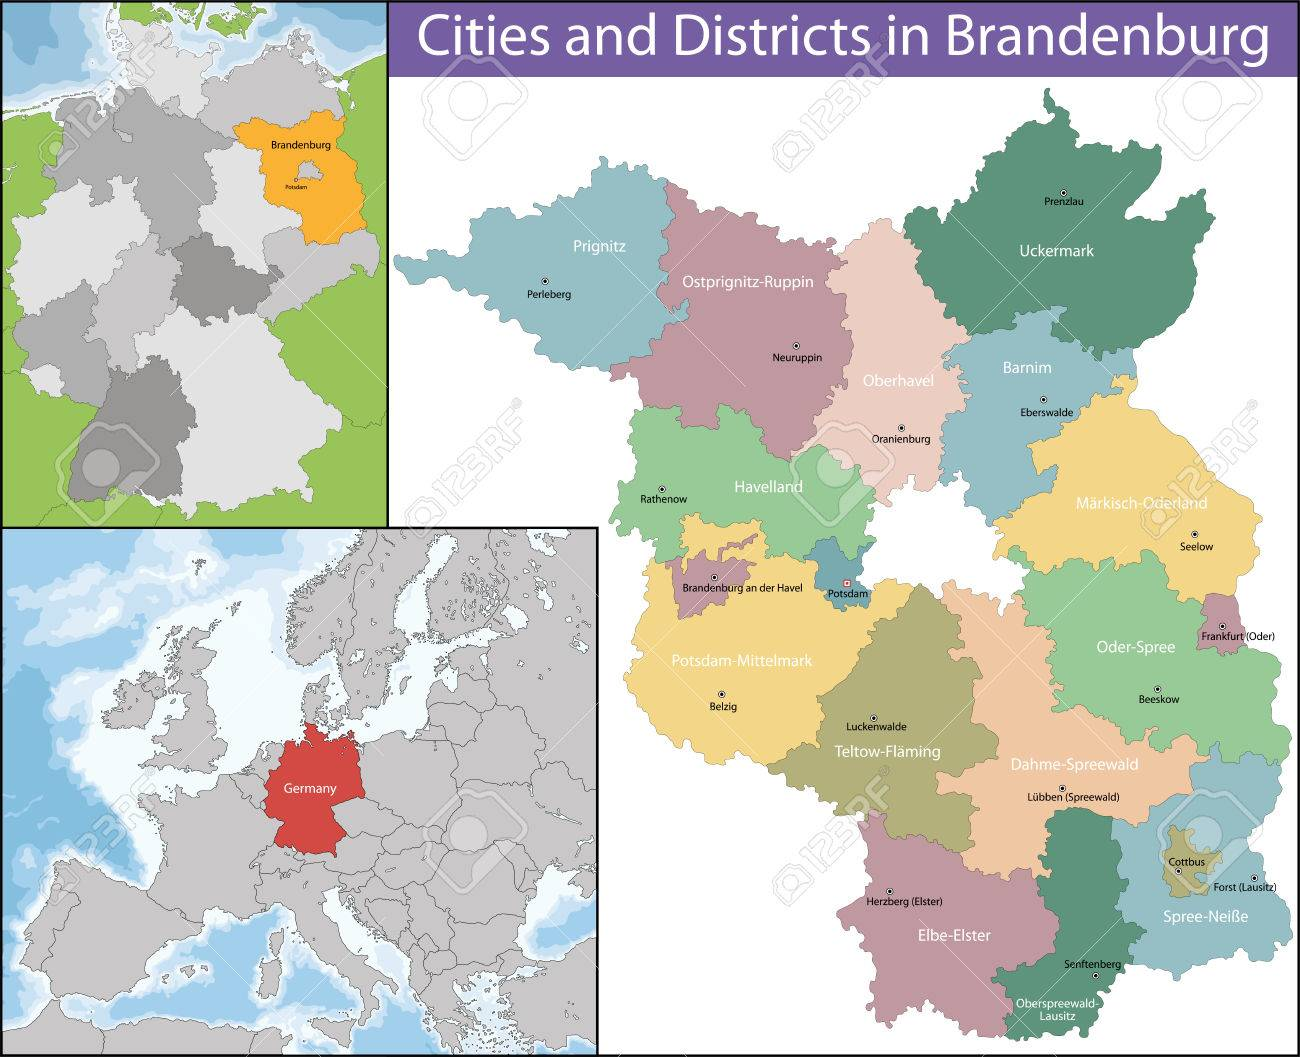 Brandenburg Is One Of The Sixteen Federated States Of Germany